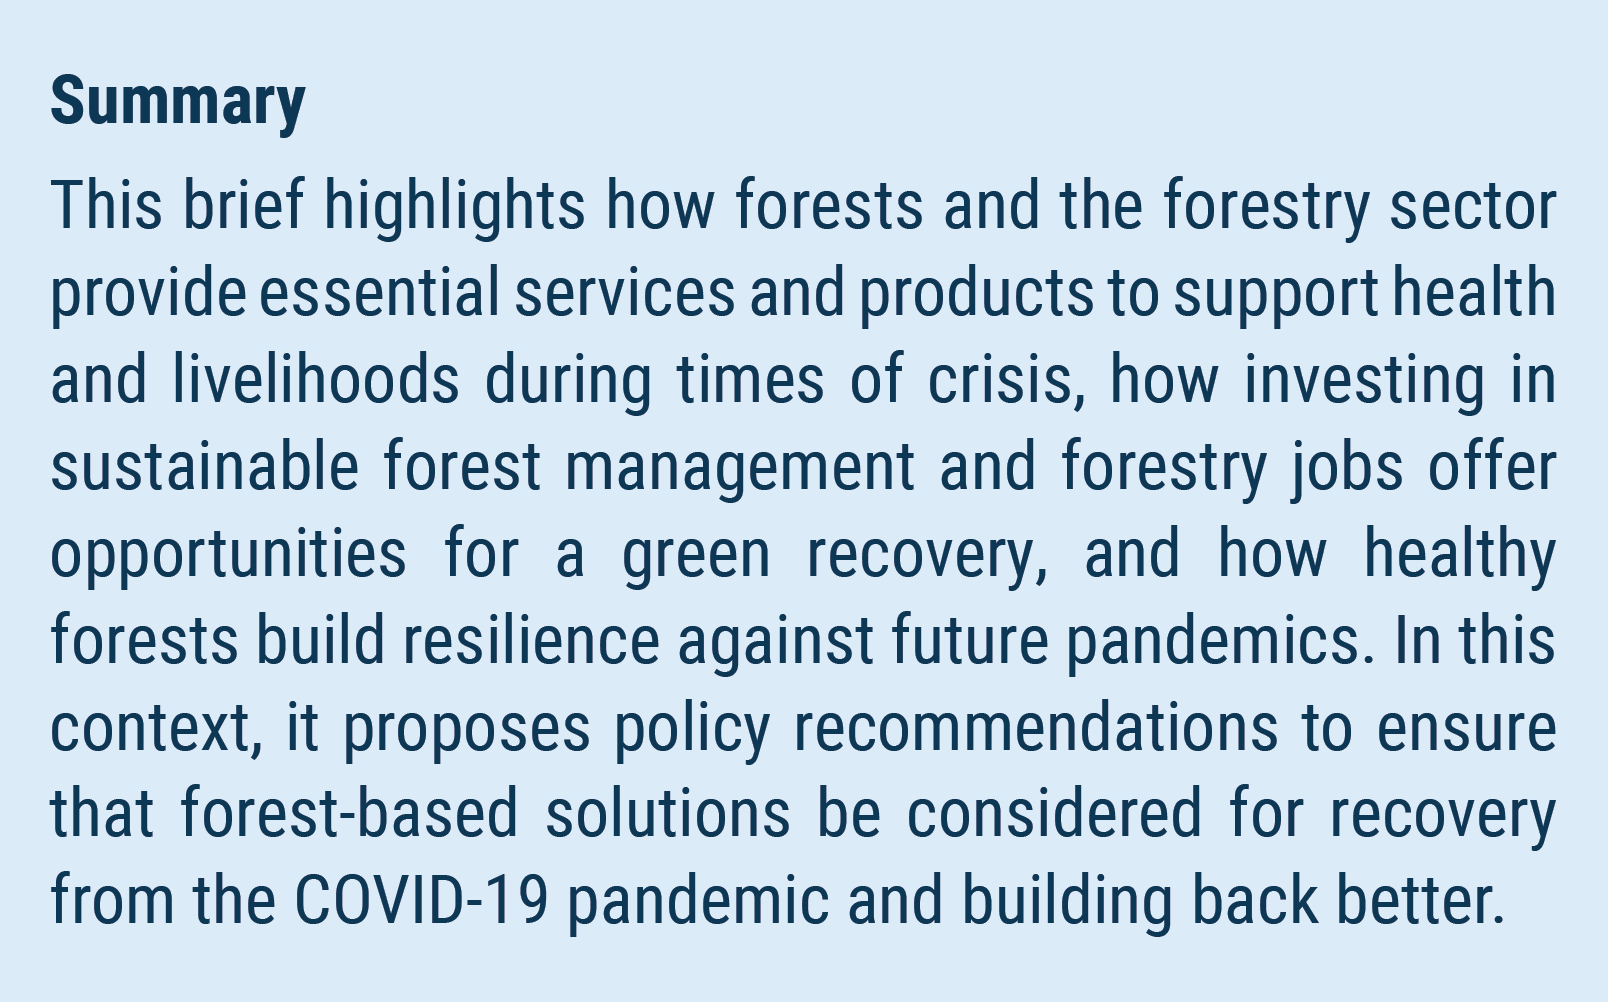 Concerning also the financial aspects of afforestation percival trentham have to make sure that the practice of forestry: Un Desa Policy Brief 80 Forests At The Heart Of A Green Recovery From The Covid 19 Pandemic Department Of Economic And Social Affairs